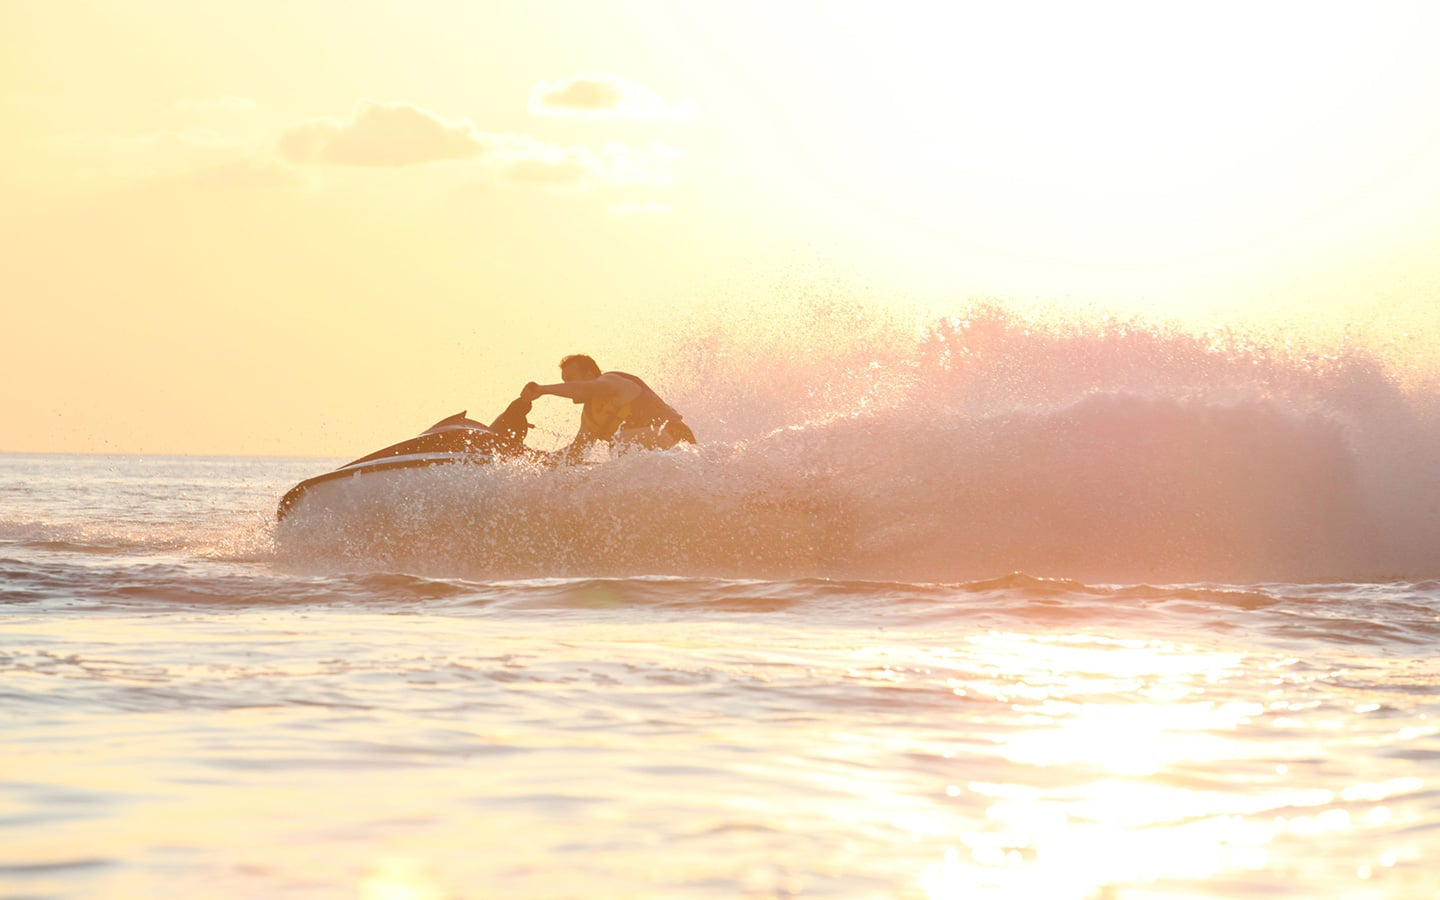 A man in jet ski during the sunset. Activities & Water Sports in Mykonos.